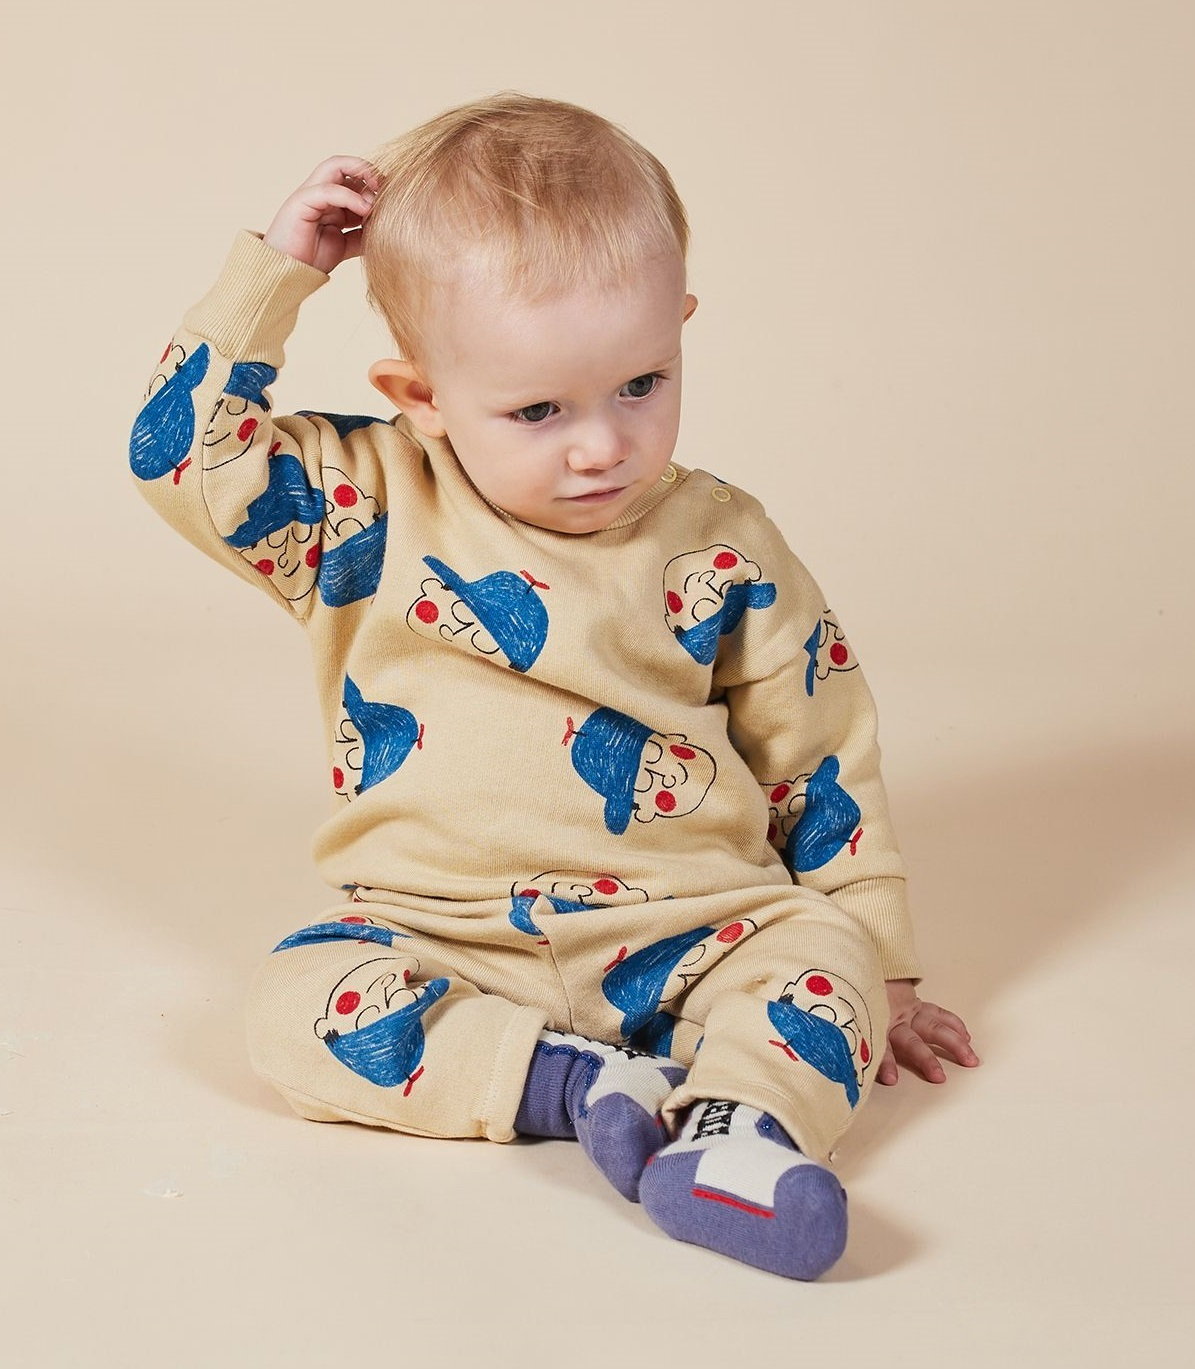 BOBO CHOSES ボボショセス Boy All Over Sweatshirt size:12-18M(80-90)~18-24M(90-100)